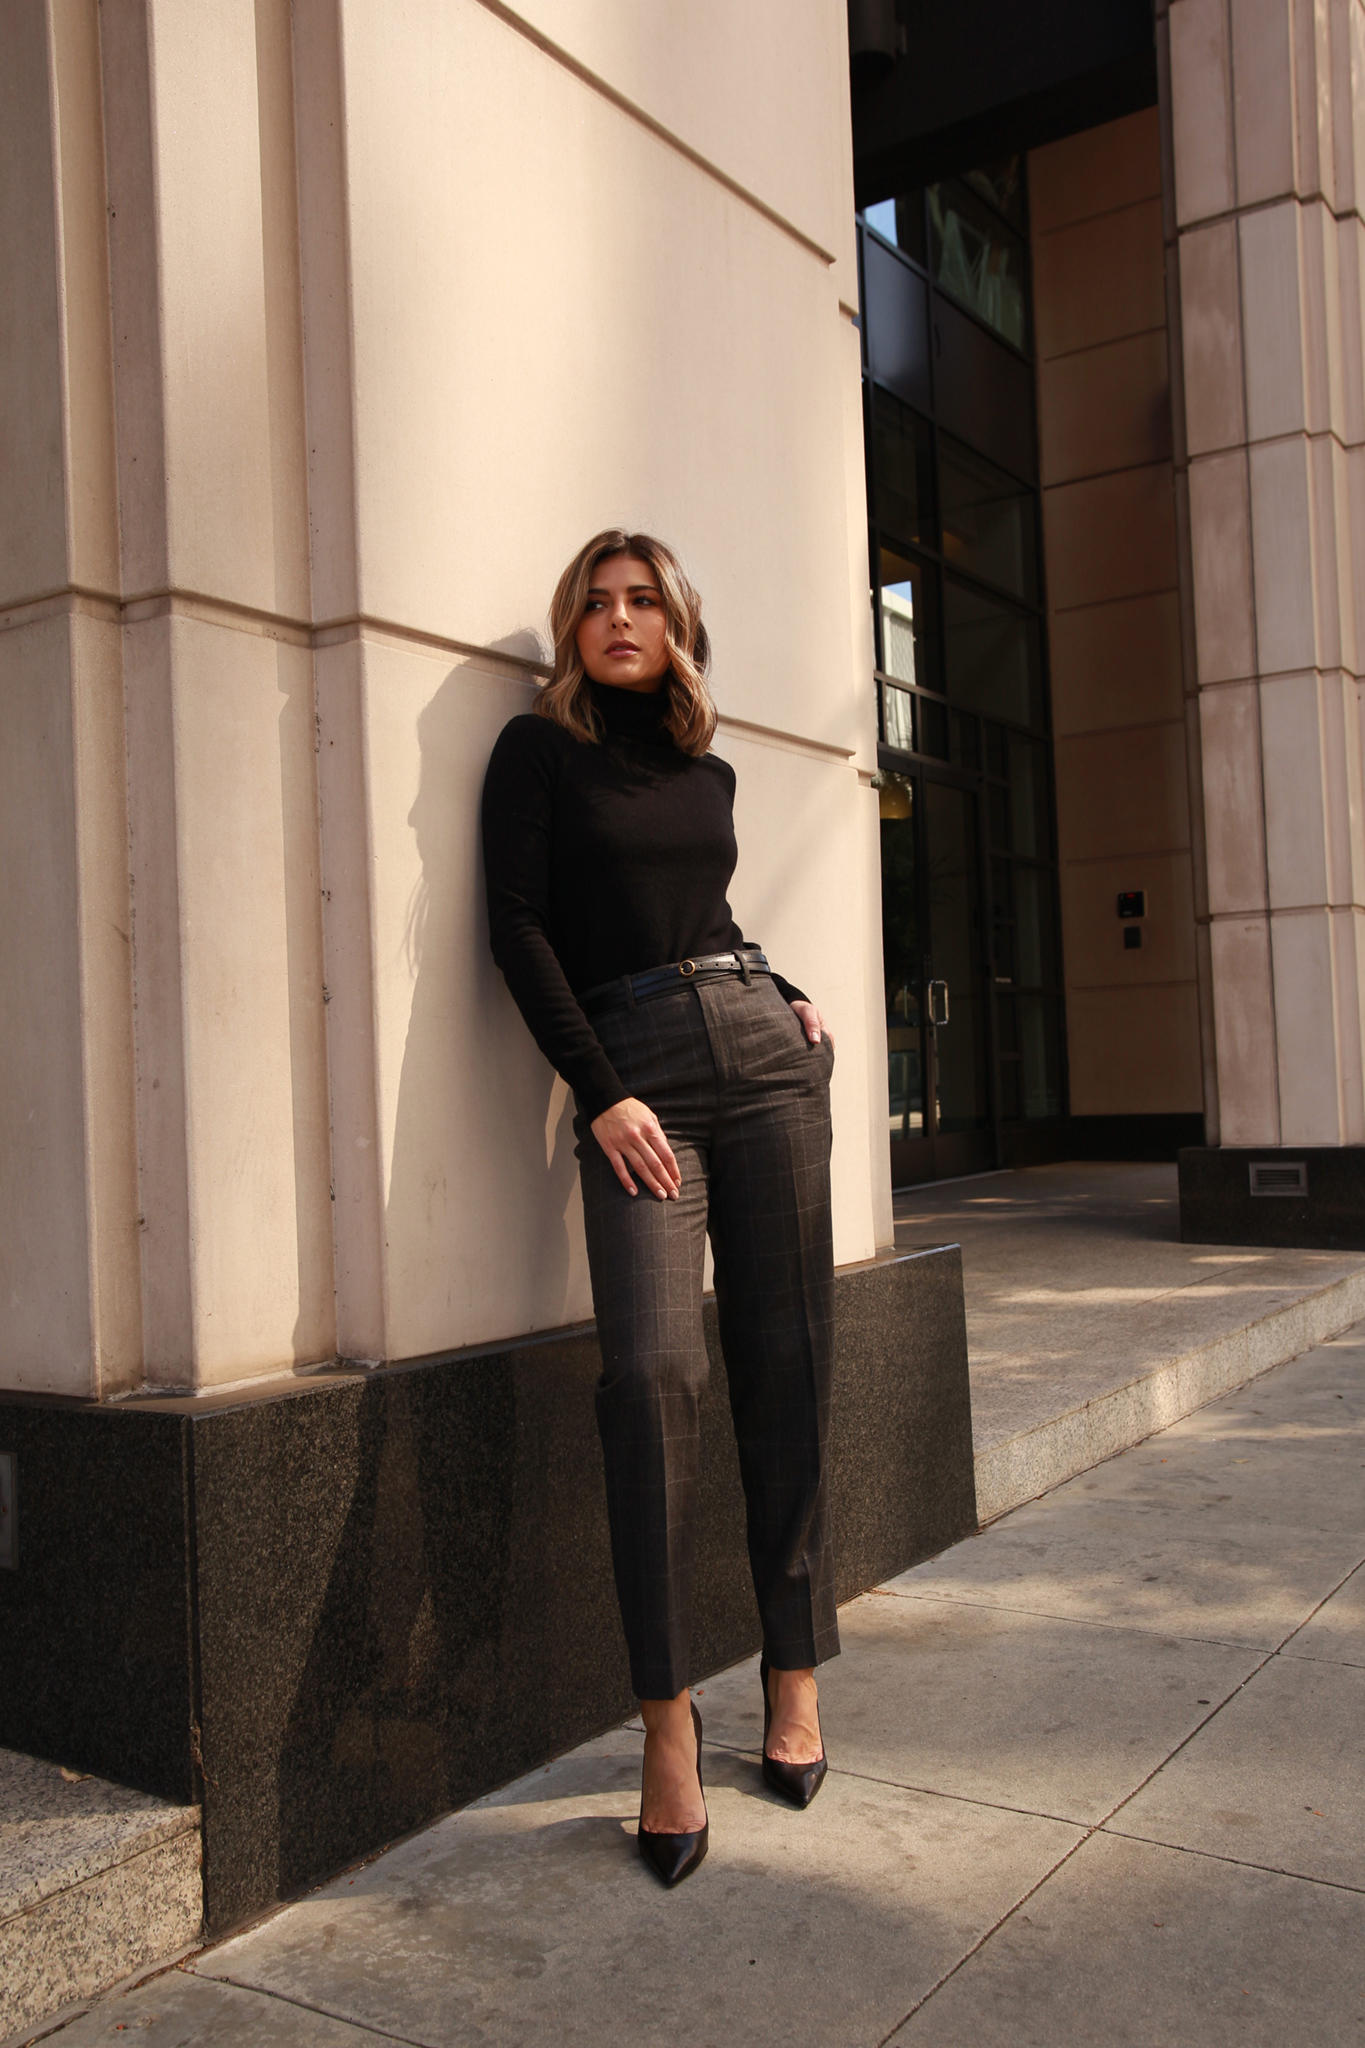 Chic Workwear Pieces You need for Fall by Pam Hetlinger | TheGirlFromPanama.com | Plaid trousers, Turtleneck Sweater, Classic American Style, Ralph Laurent office wear, Black pumps, double wrap belt, chic office style